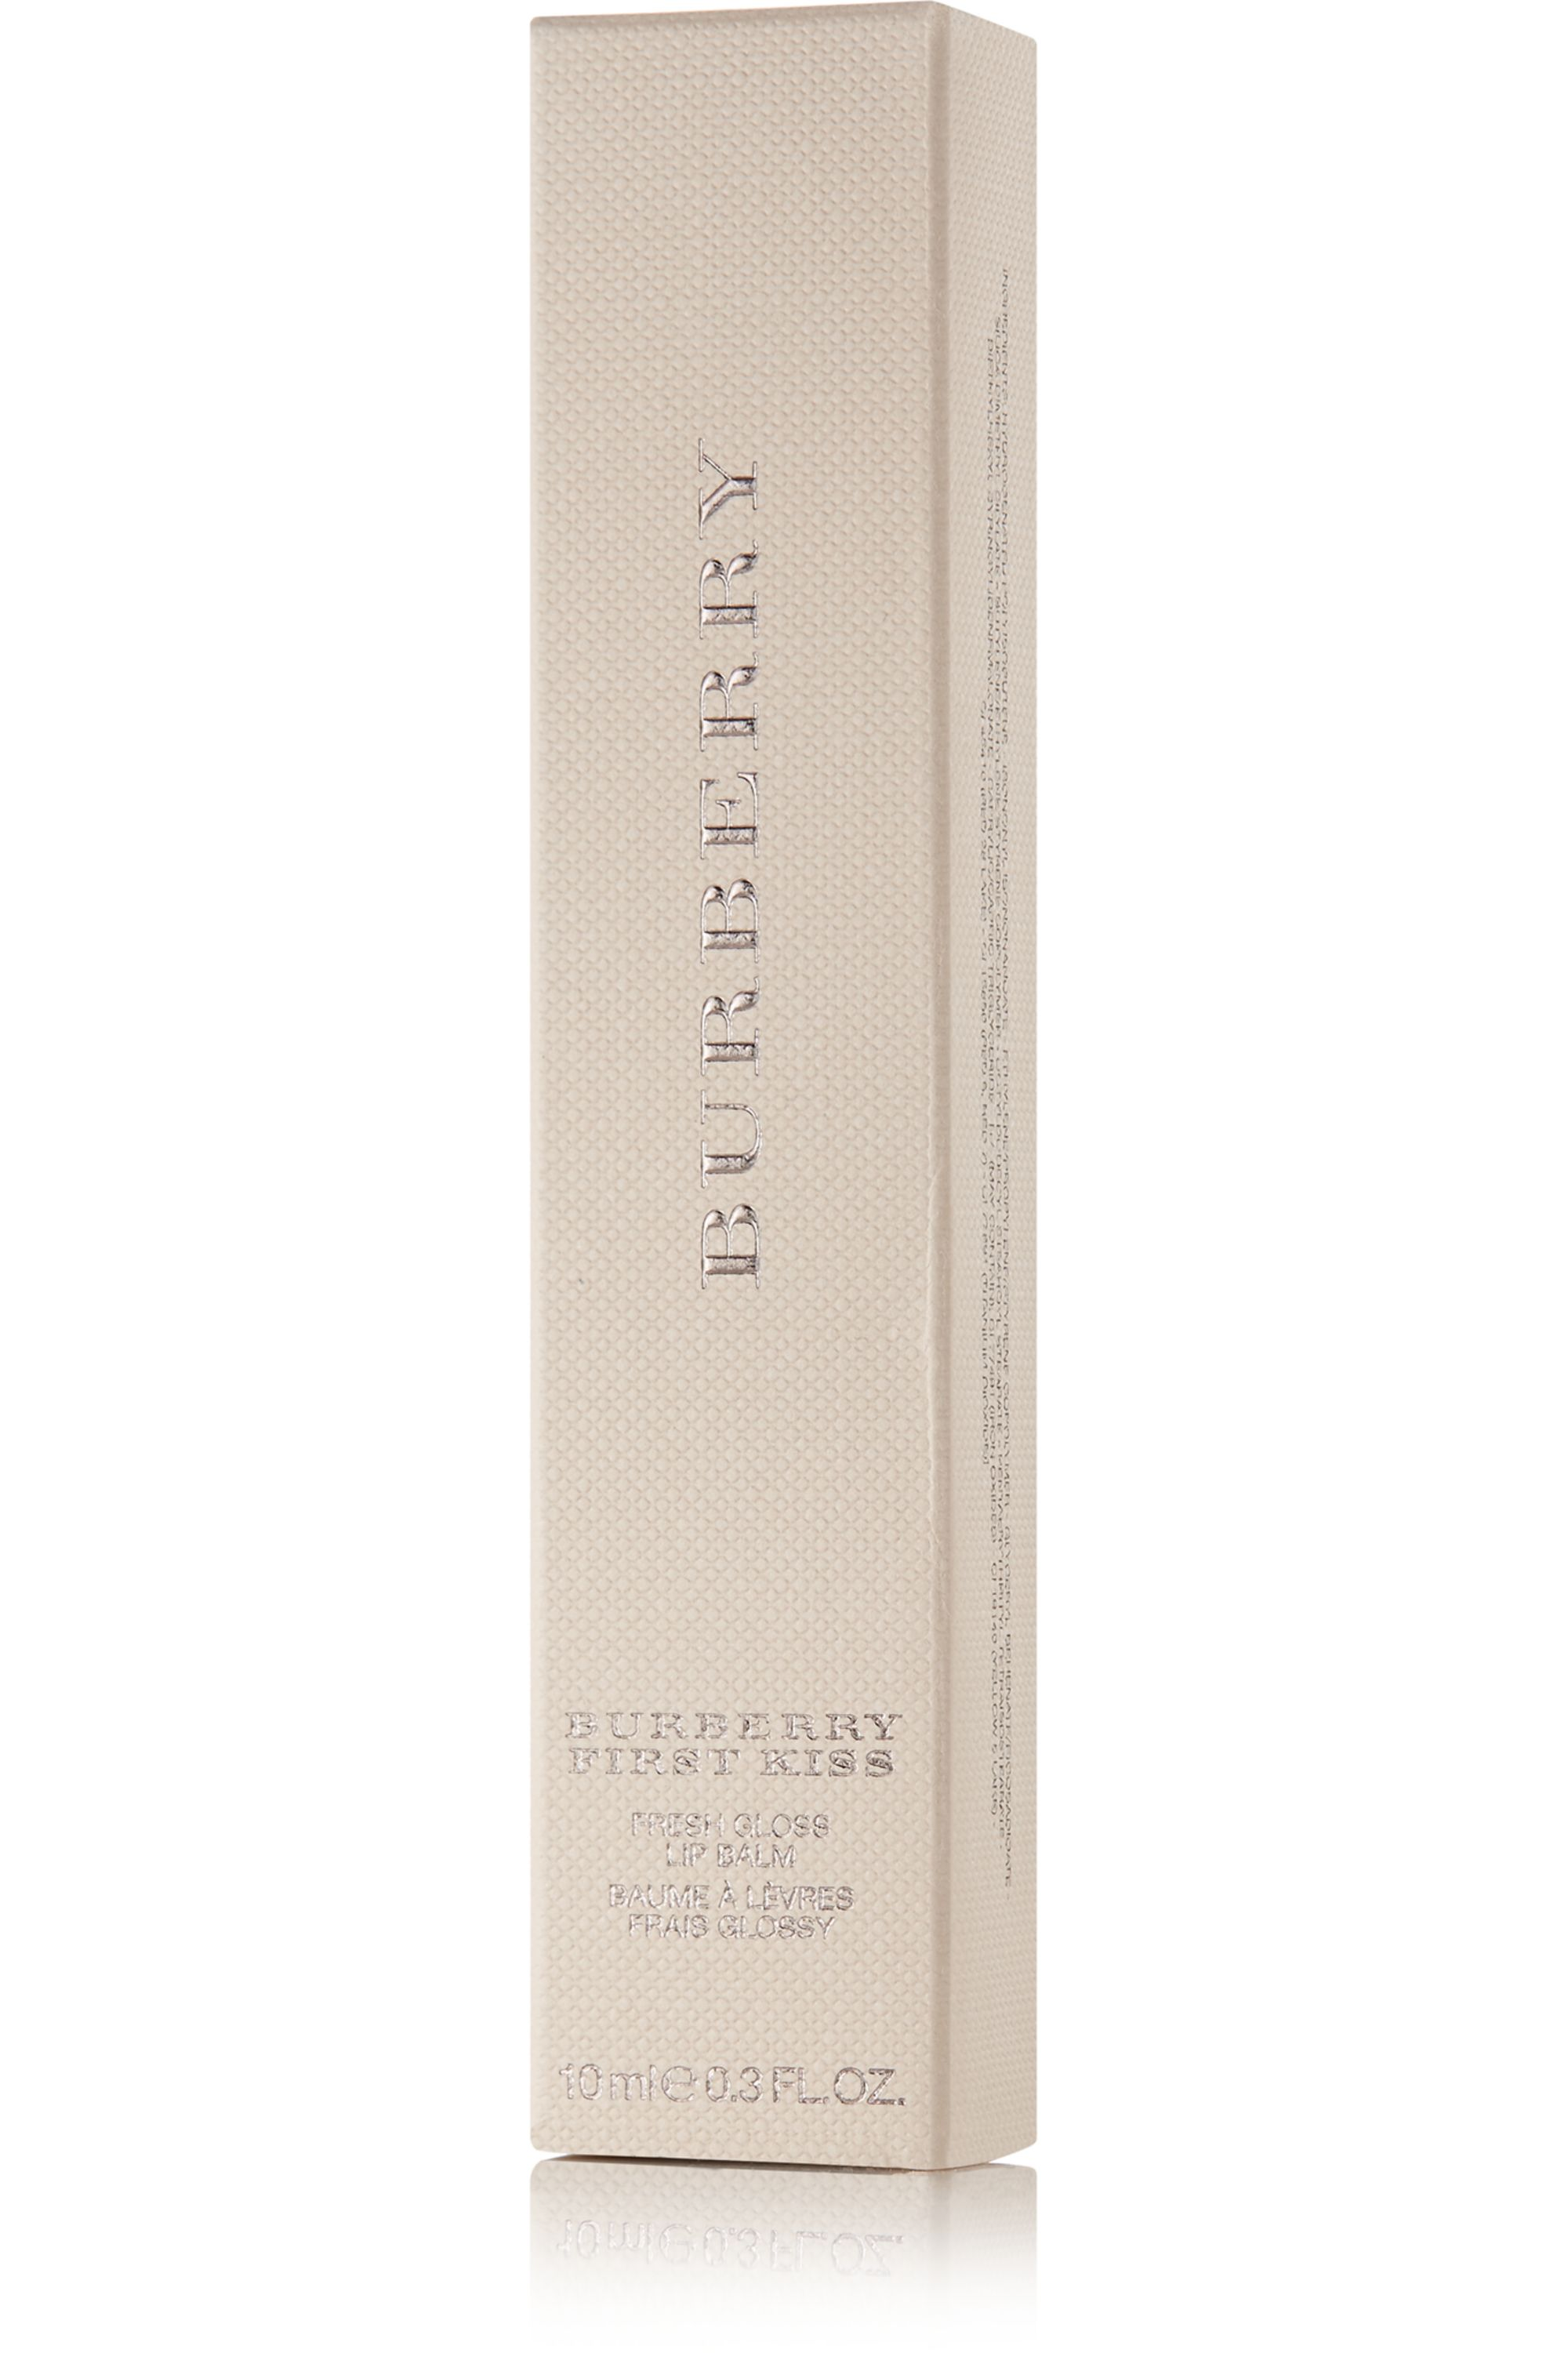 Burberry Beauty First Kiss - Crushed Red No.04